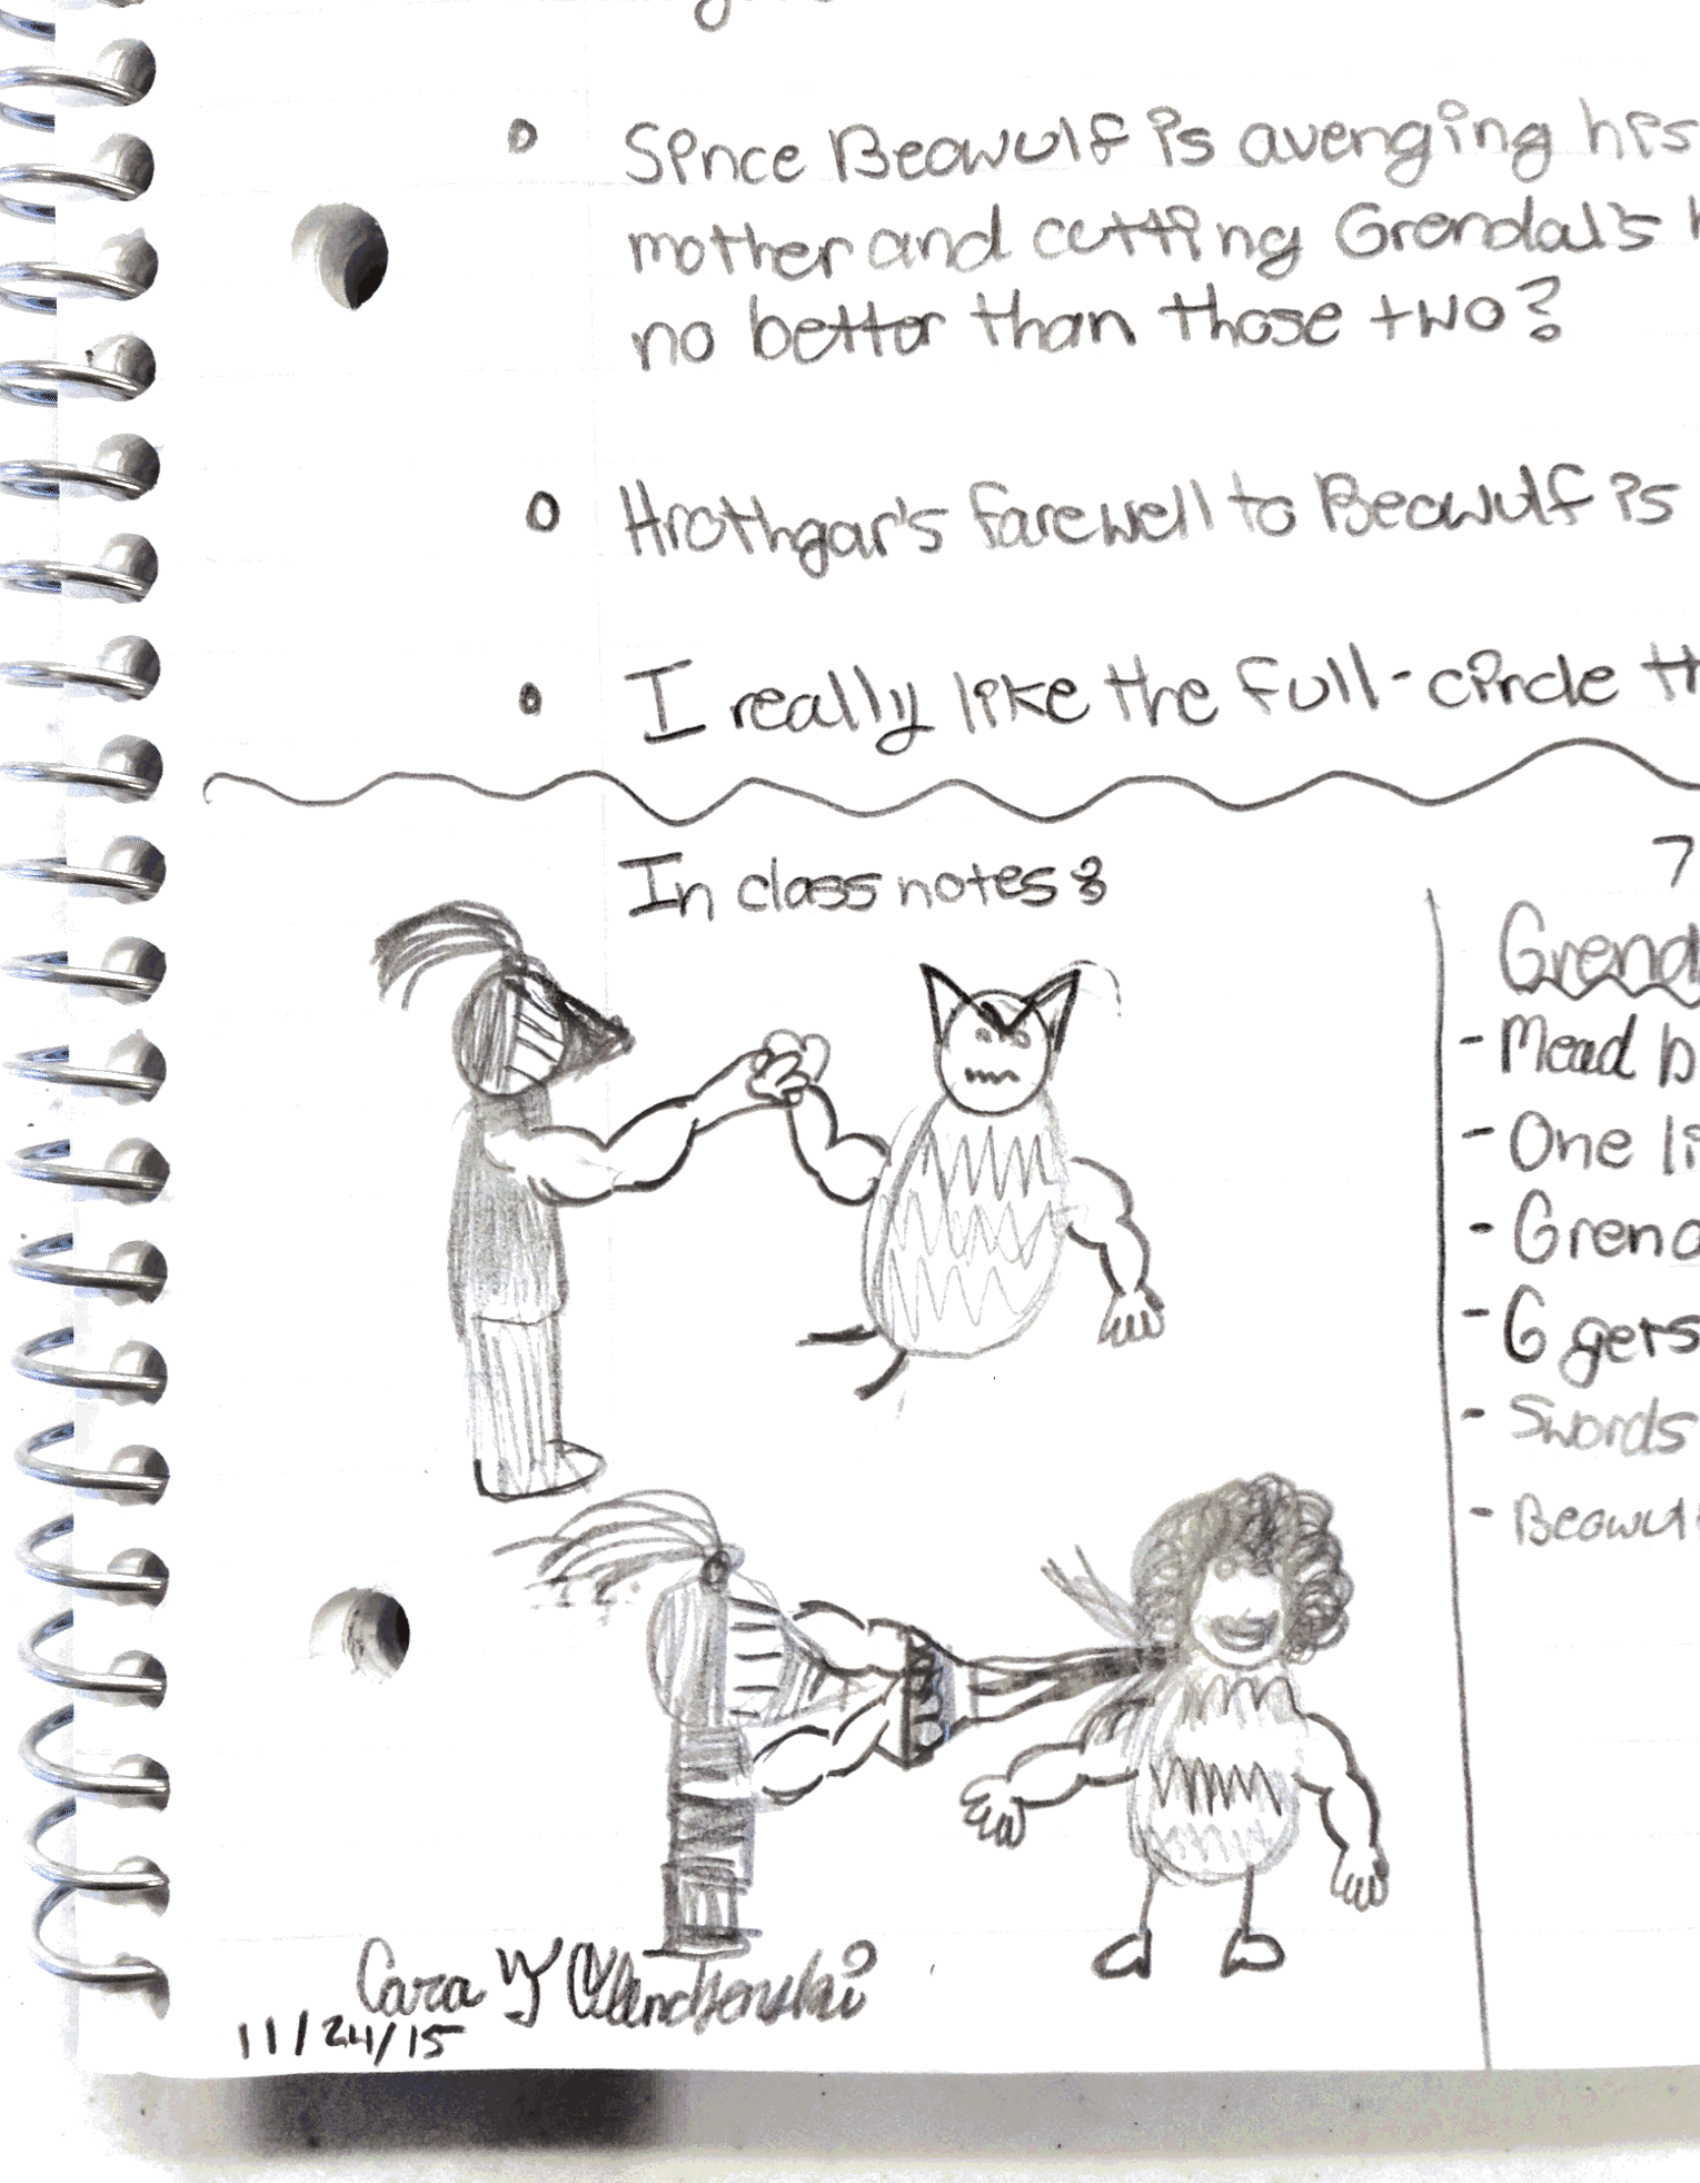 BritLit Beowulf Drawings-14.png